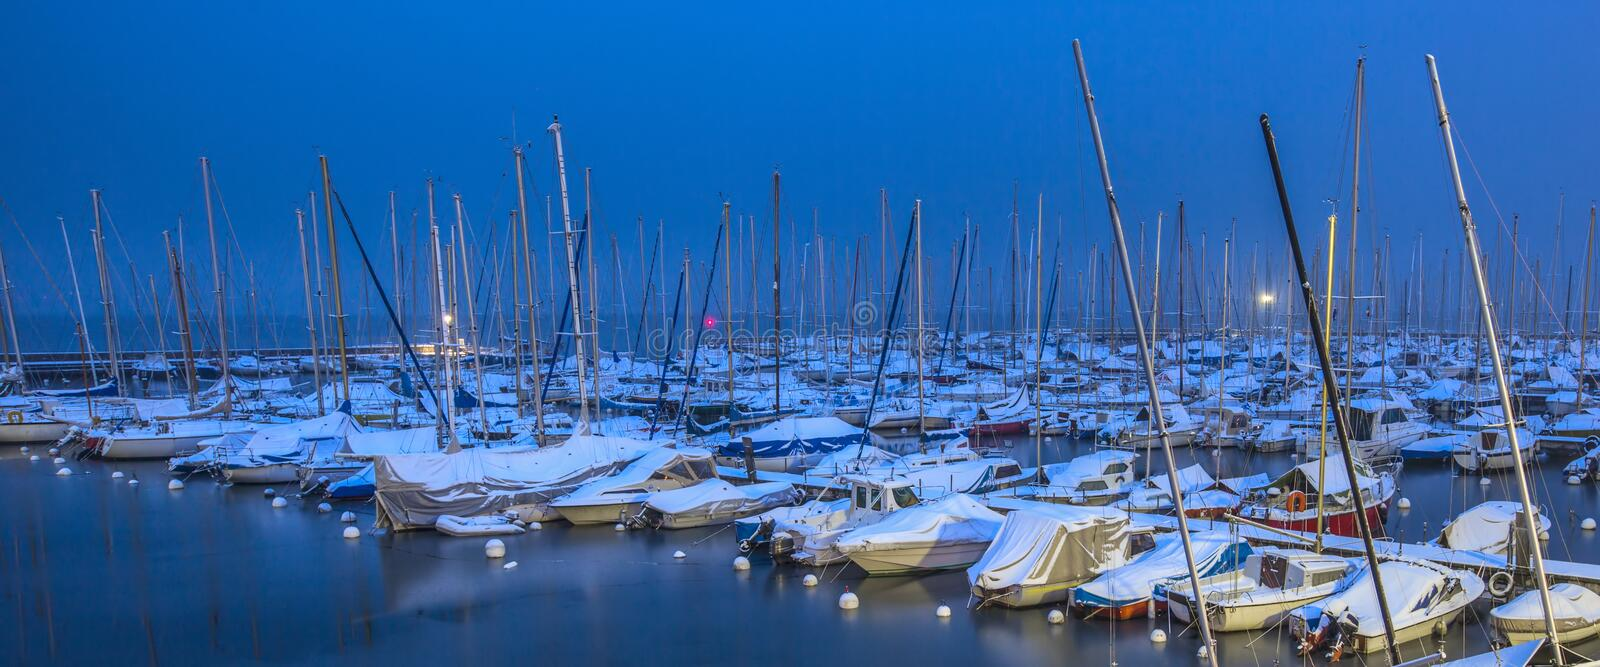 Download Snow in a Swiss Marina stock photo. Image of sail, freeze - 28742790